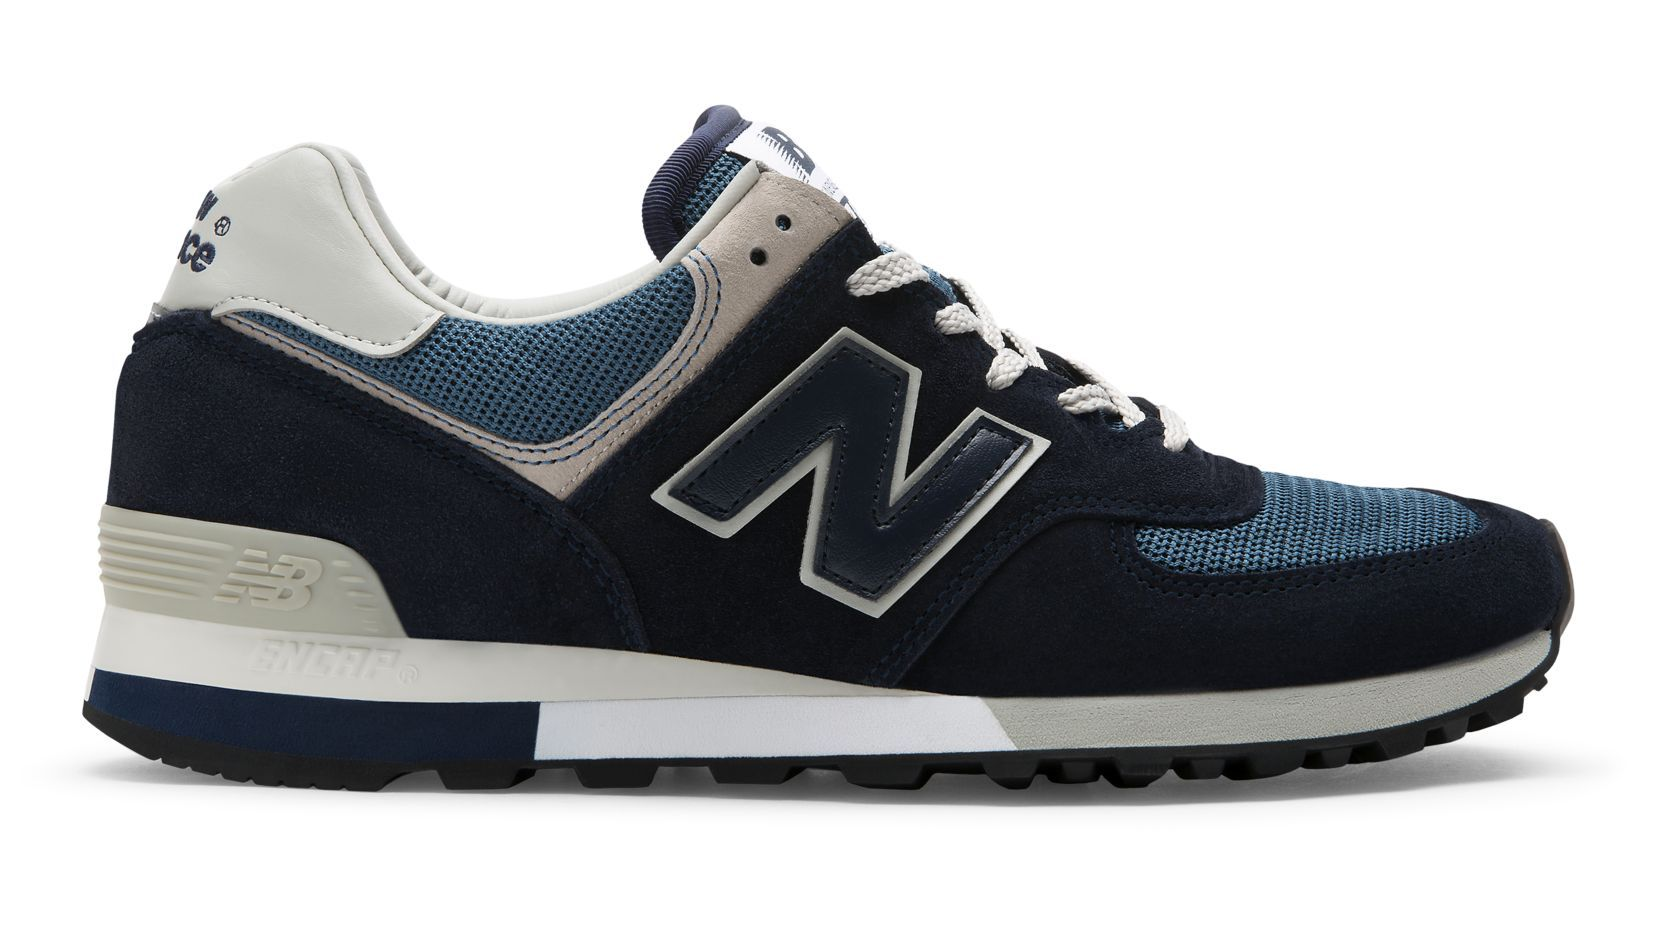 576 Made in UK new balance m991 made in uk